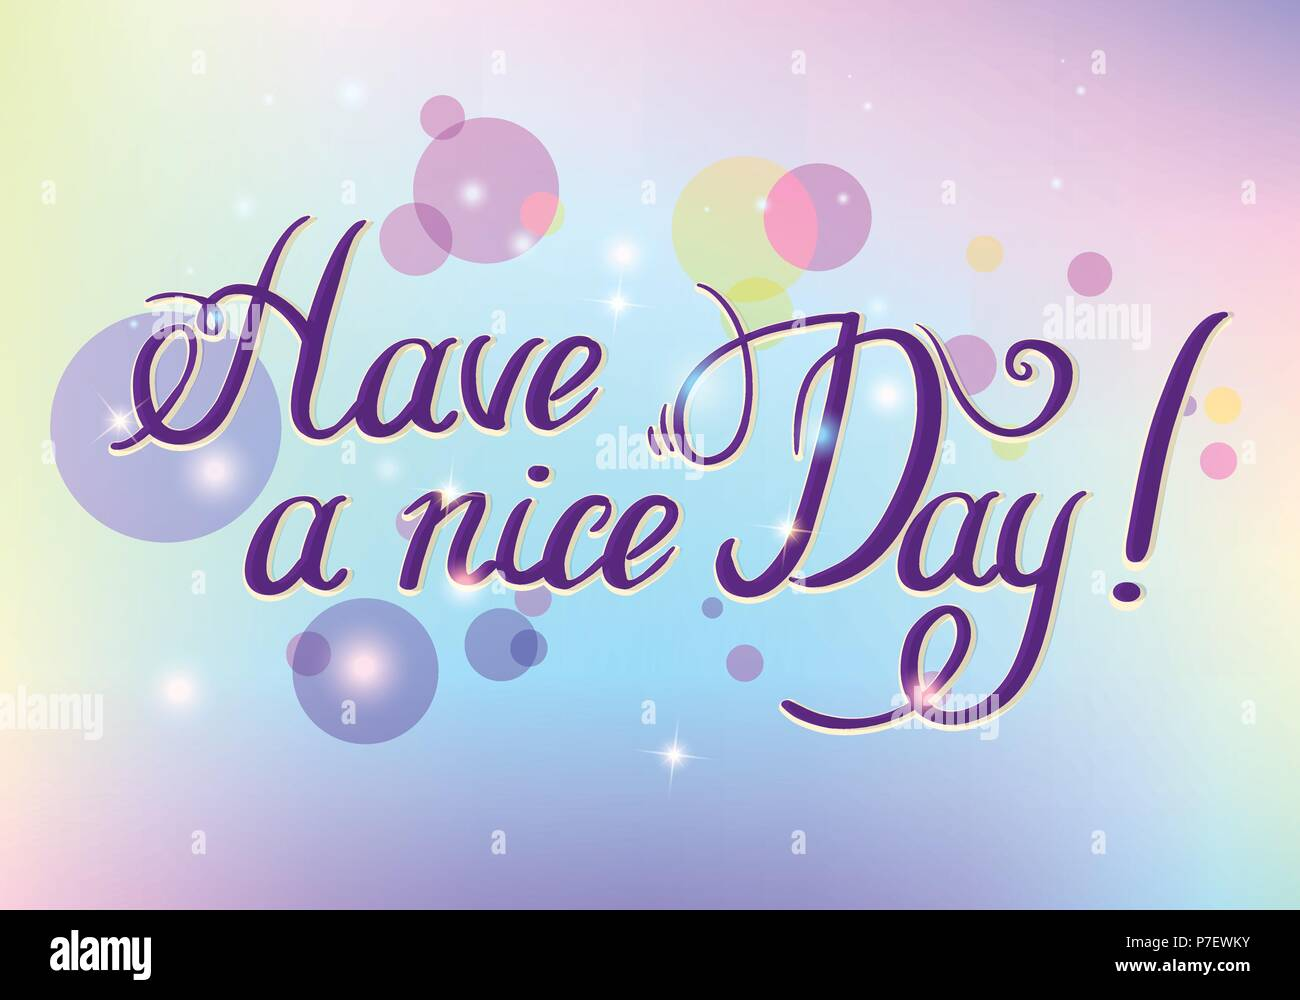 Have a nice day hand drawn lettering isolated on white background have a nice day hand drawn lettering isolated on white background design element for poster greeting card banner vector illustration m4hsunfo